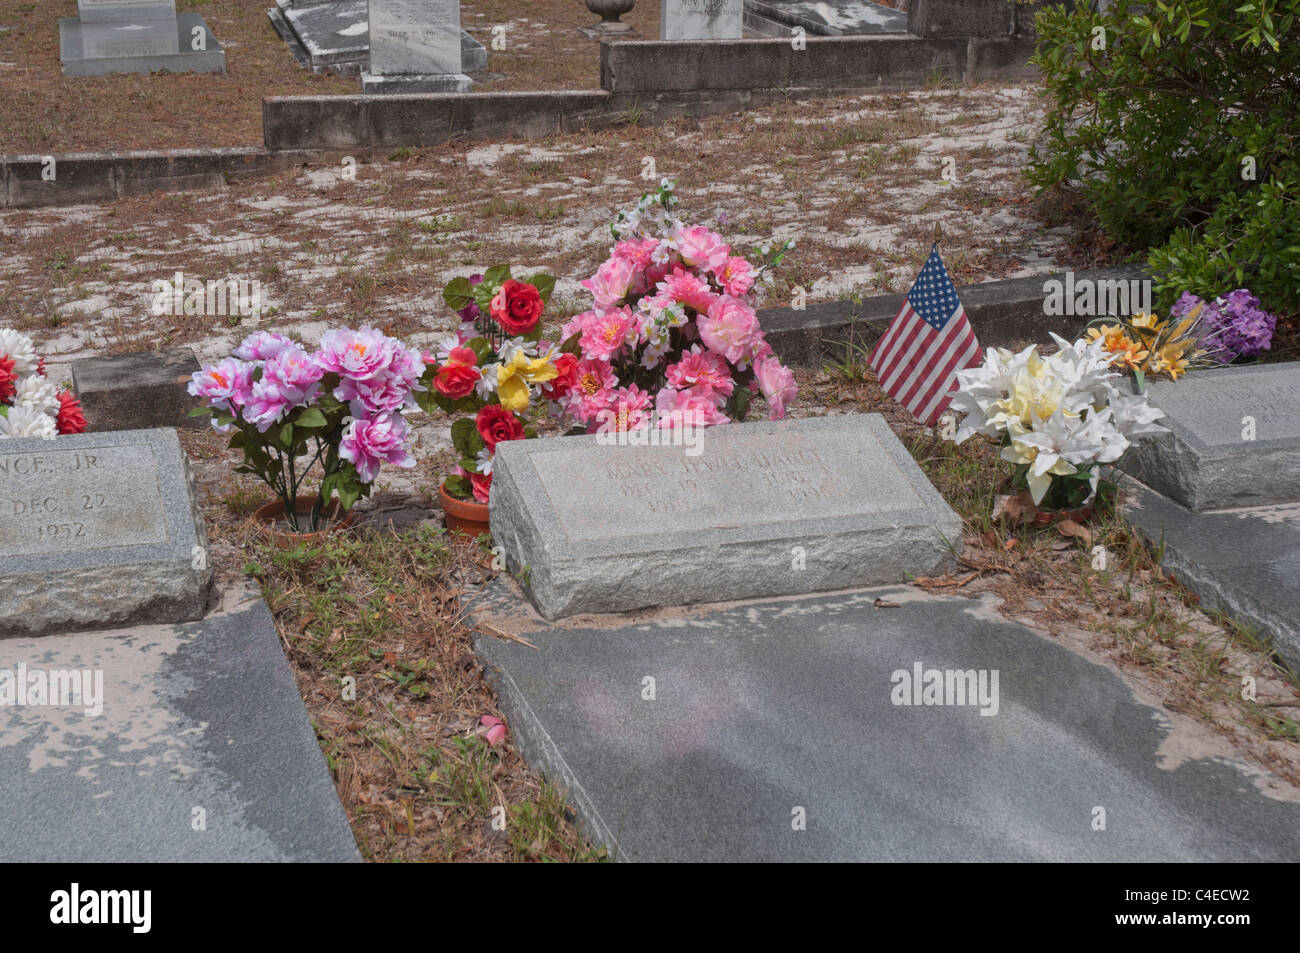 Artificial flowers and American flag mark the gravesites in Carrabelle cemetery along Florida's Gulf coast. - Stock Image